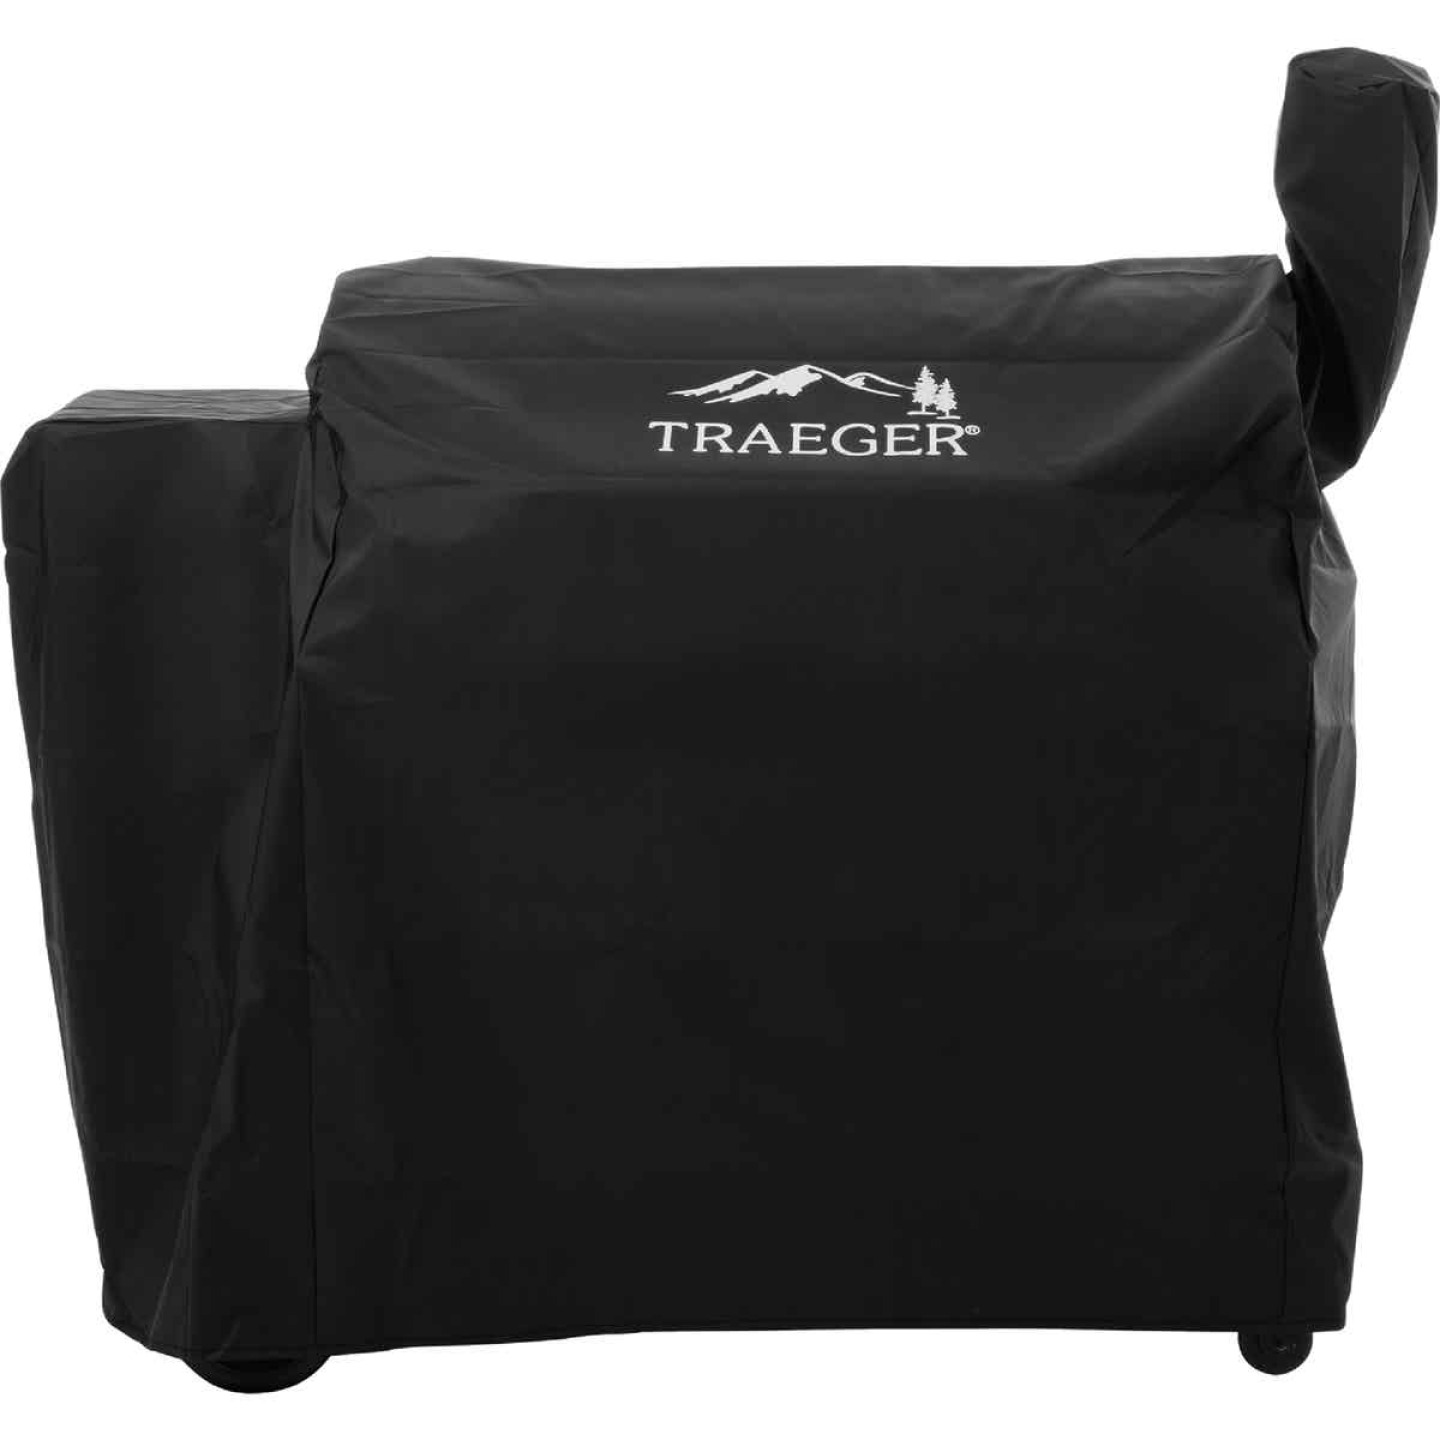 Traeger 34 Series 42 In. Black Polyester Full-Length Grill Cover Image 1